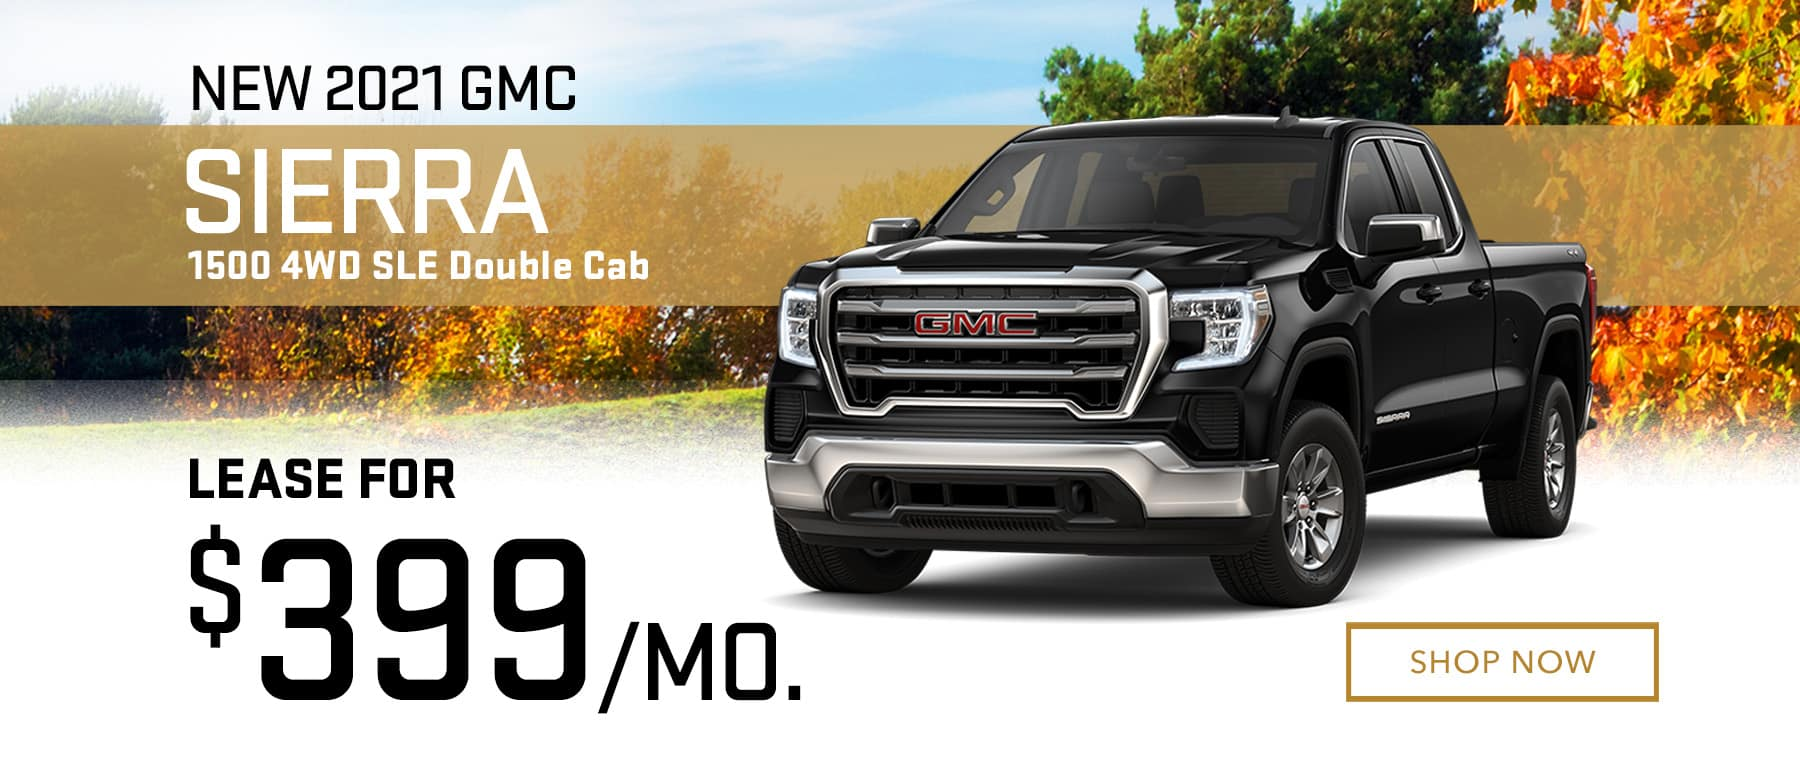 BCO-1800×760-New 2021 GMC Sierra 1500 4WD SLE Double Cab _0921